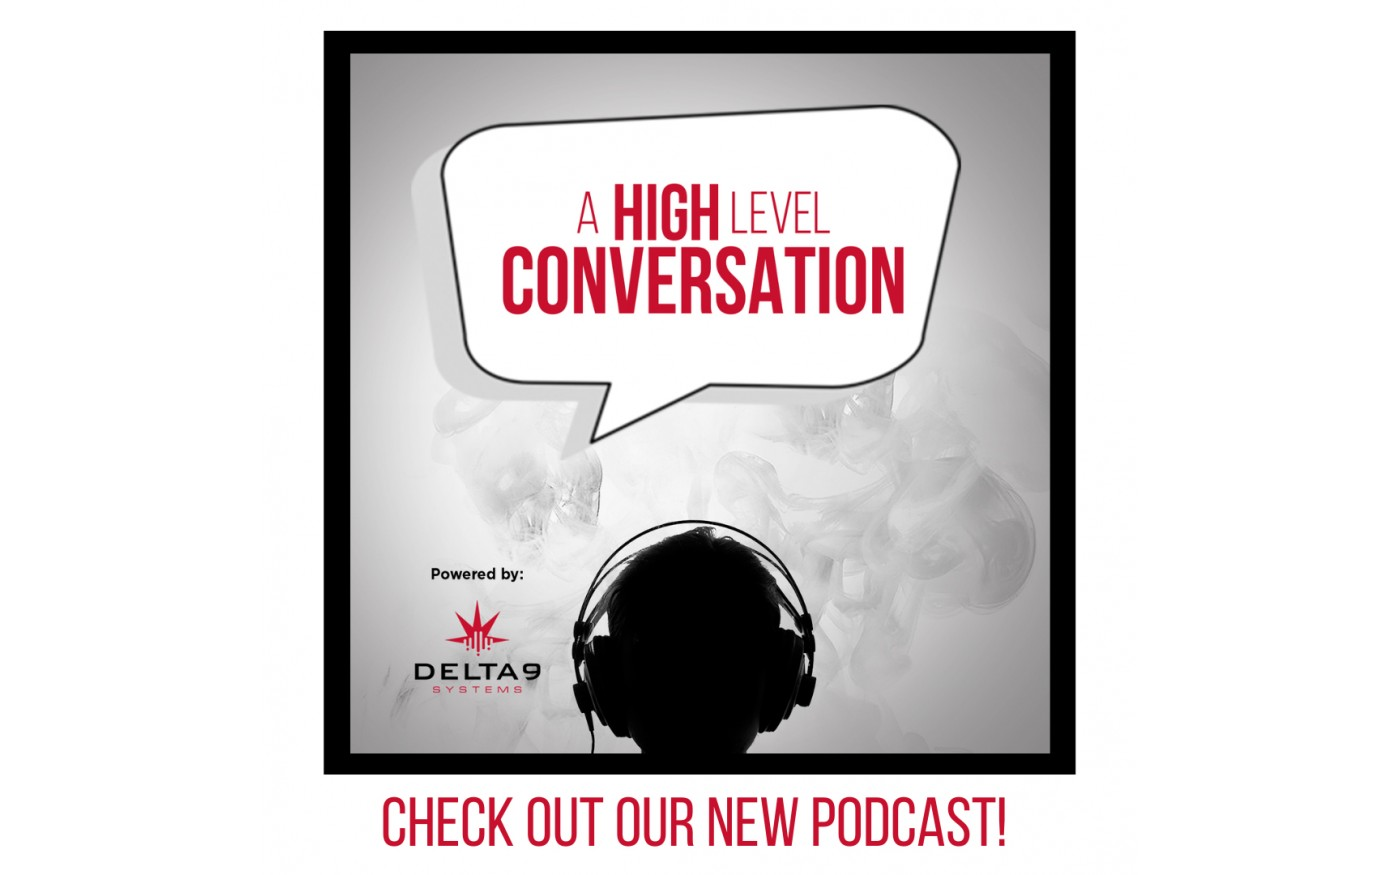 podcast graphic: A High Level Conversation